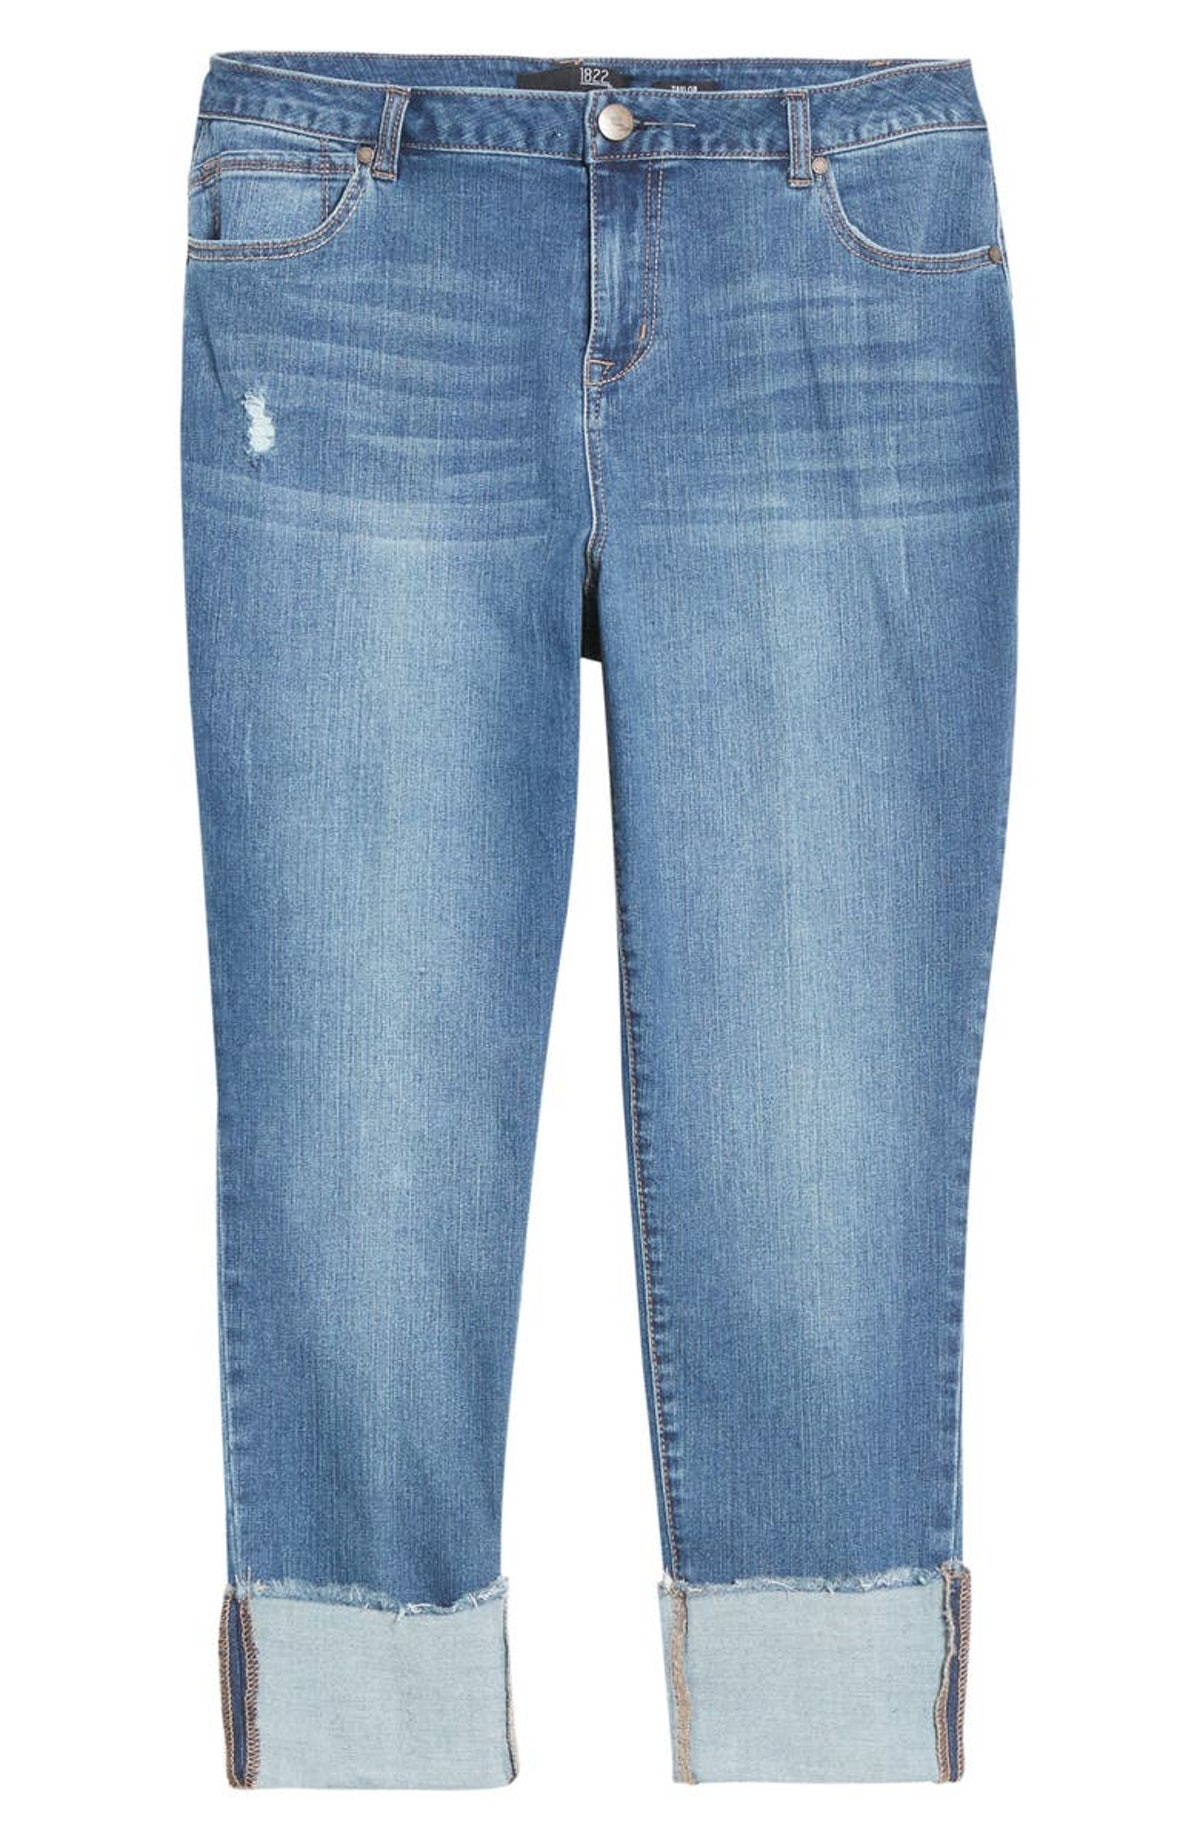 Deep Roll Cuff Jeans from 1822 Denim, available to shop via Nordstrom.